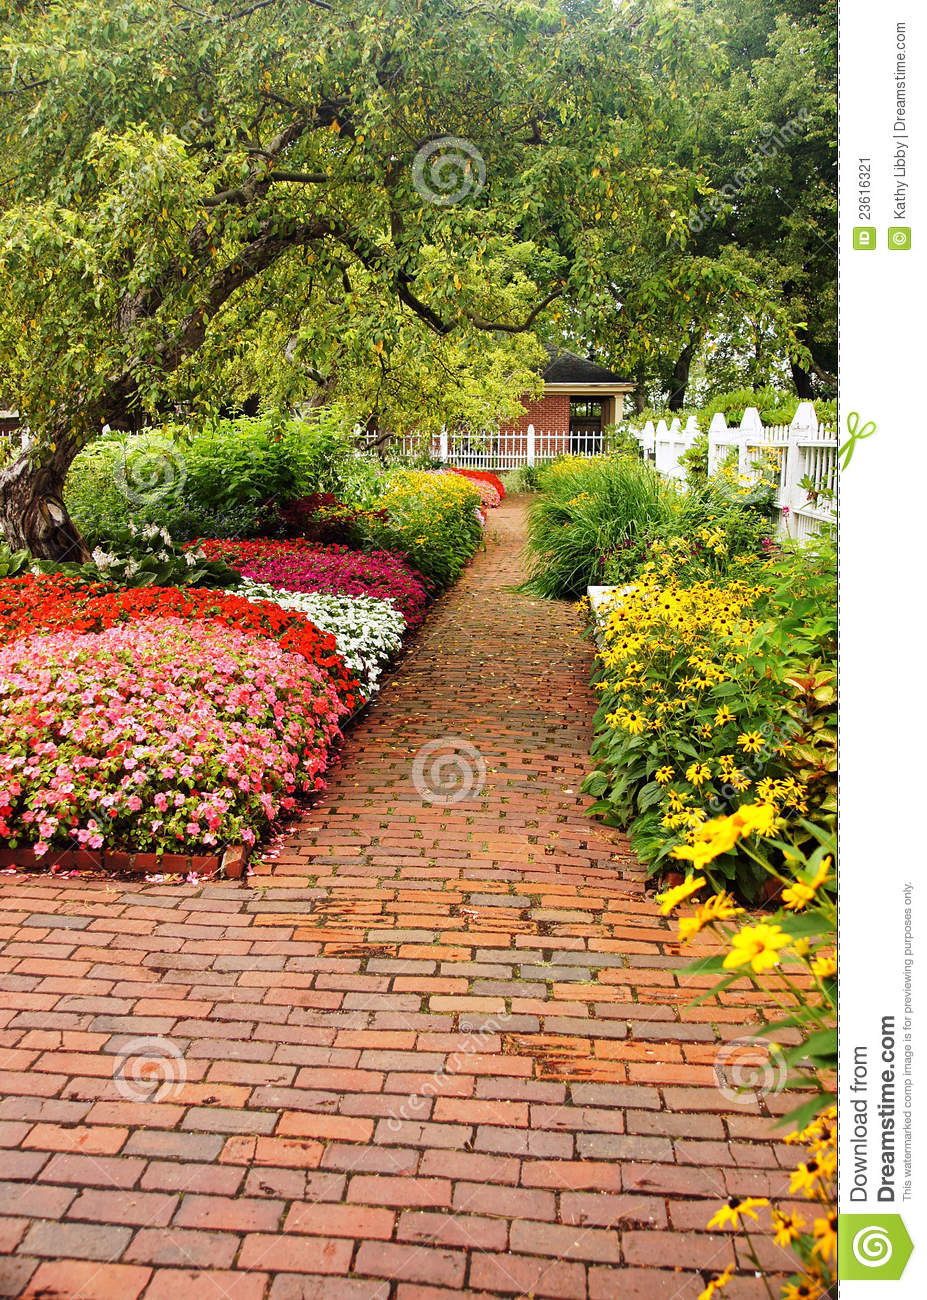 Brick Garden Path Stock Image Image 23616321